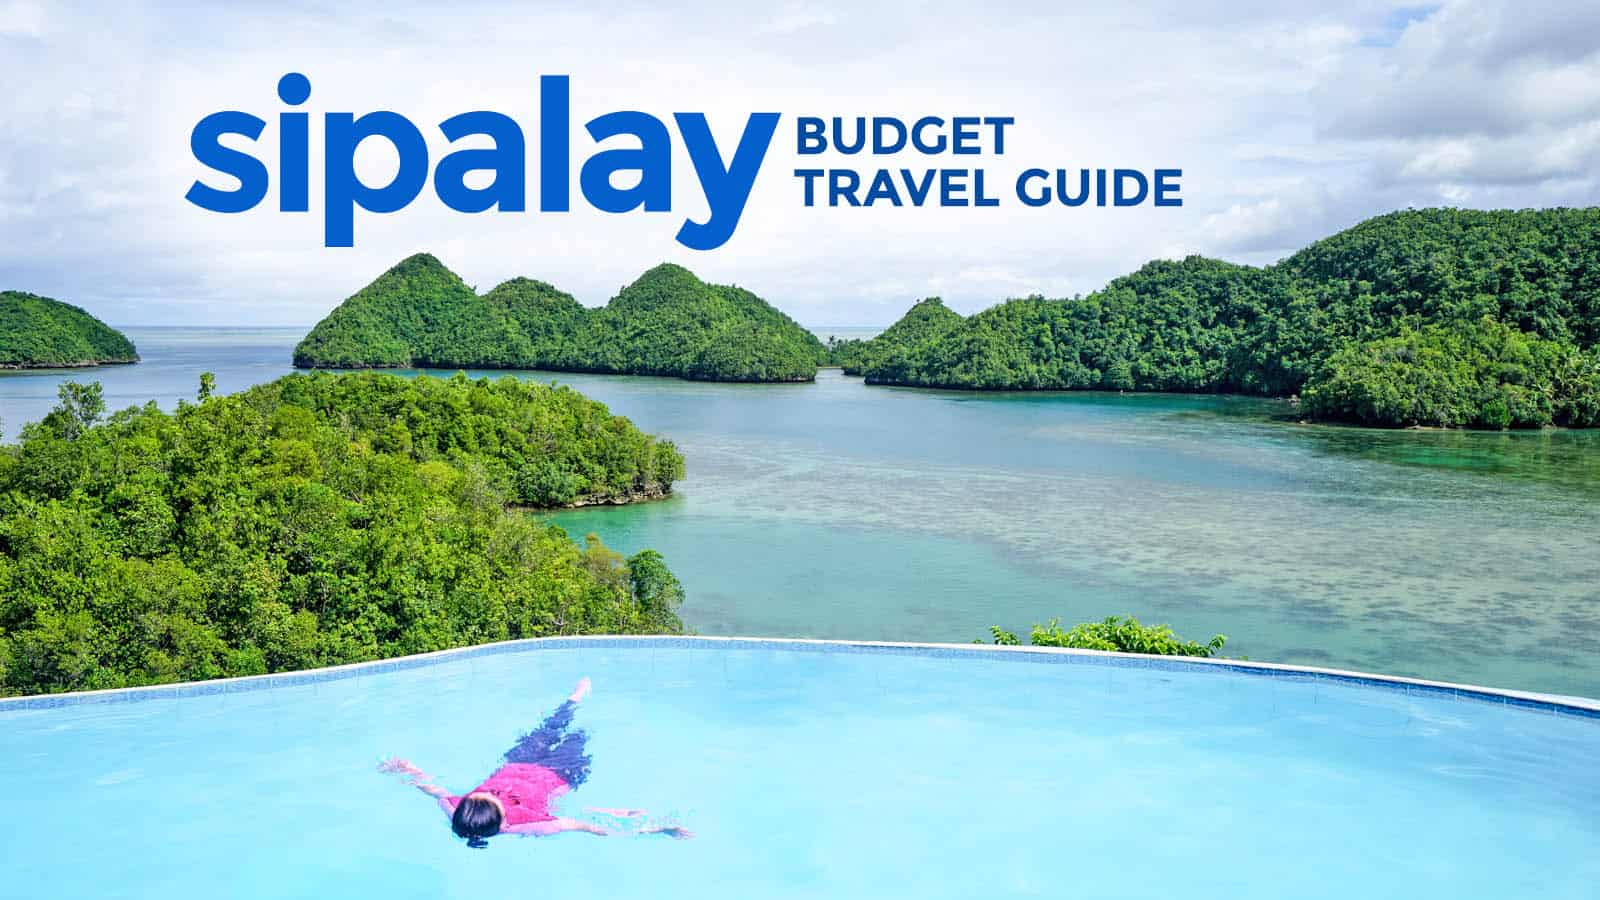 SIPALAY TRAVEL GUIDE with Budget Itinerary